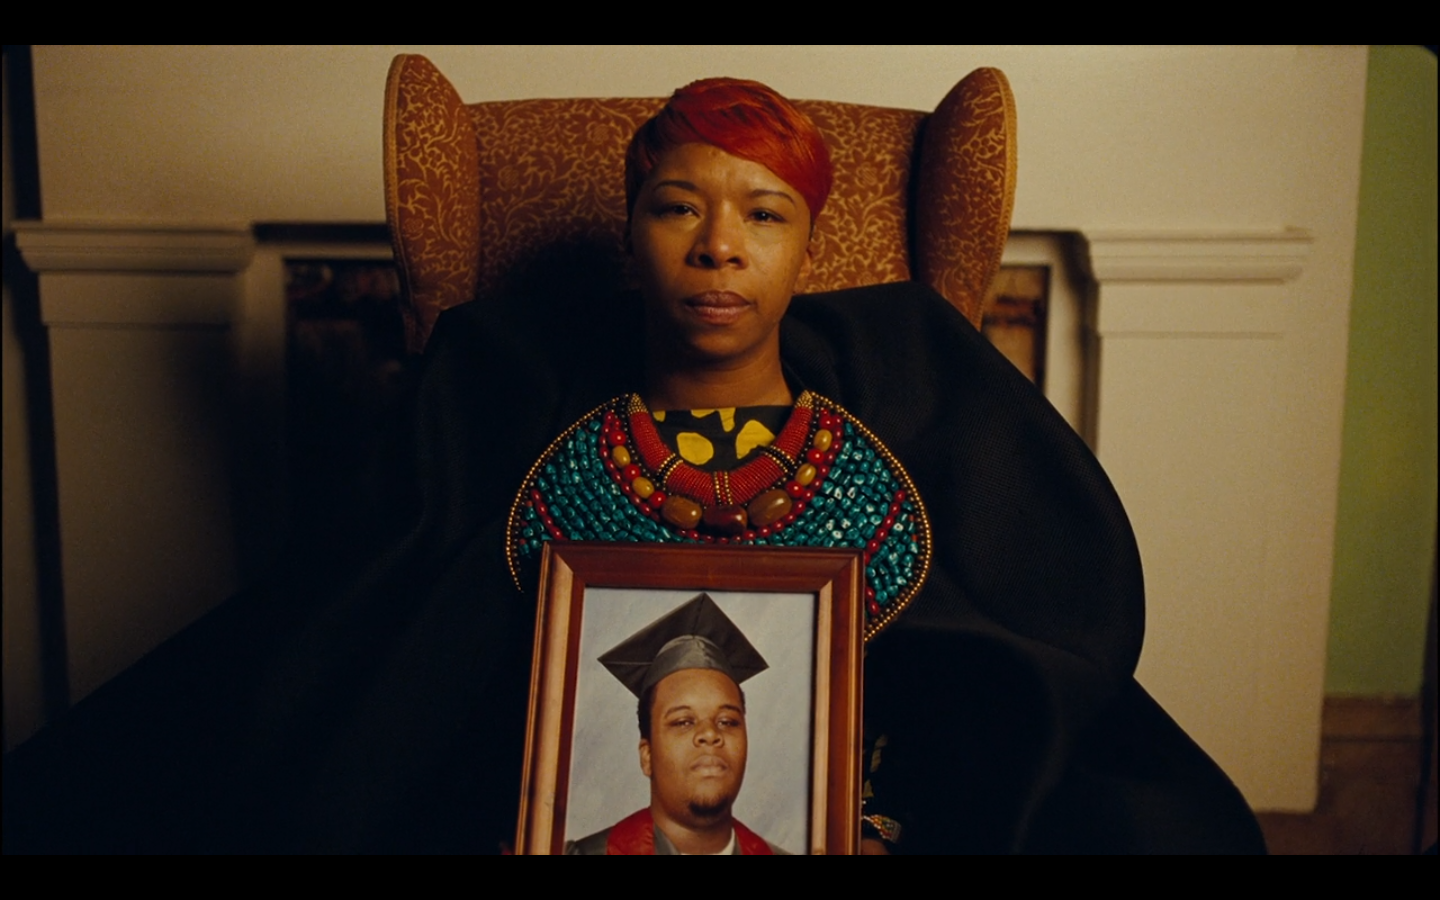 Mike Brown's mother Lesley McSpadden